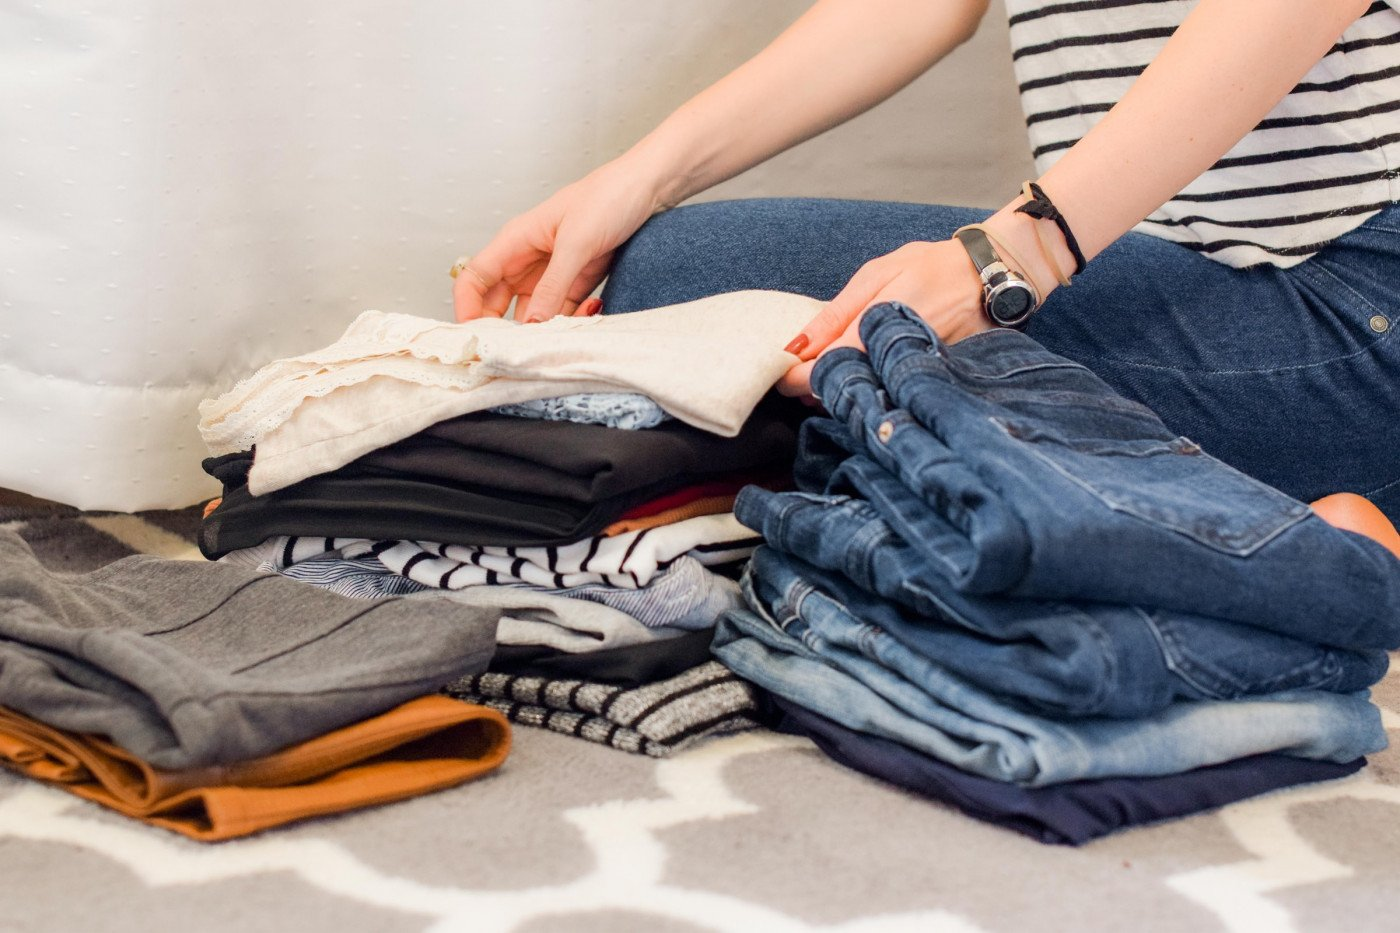 How to Take Care of Your Clothes: The Ultimate Guide to Clothing Care